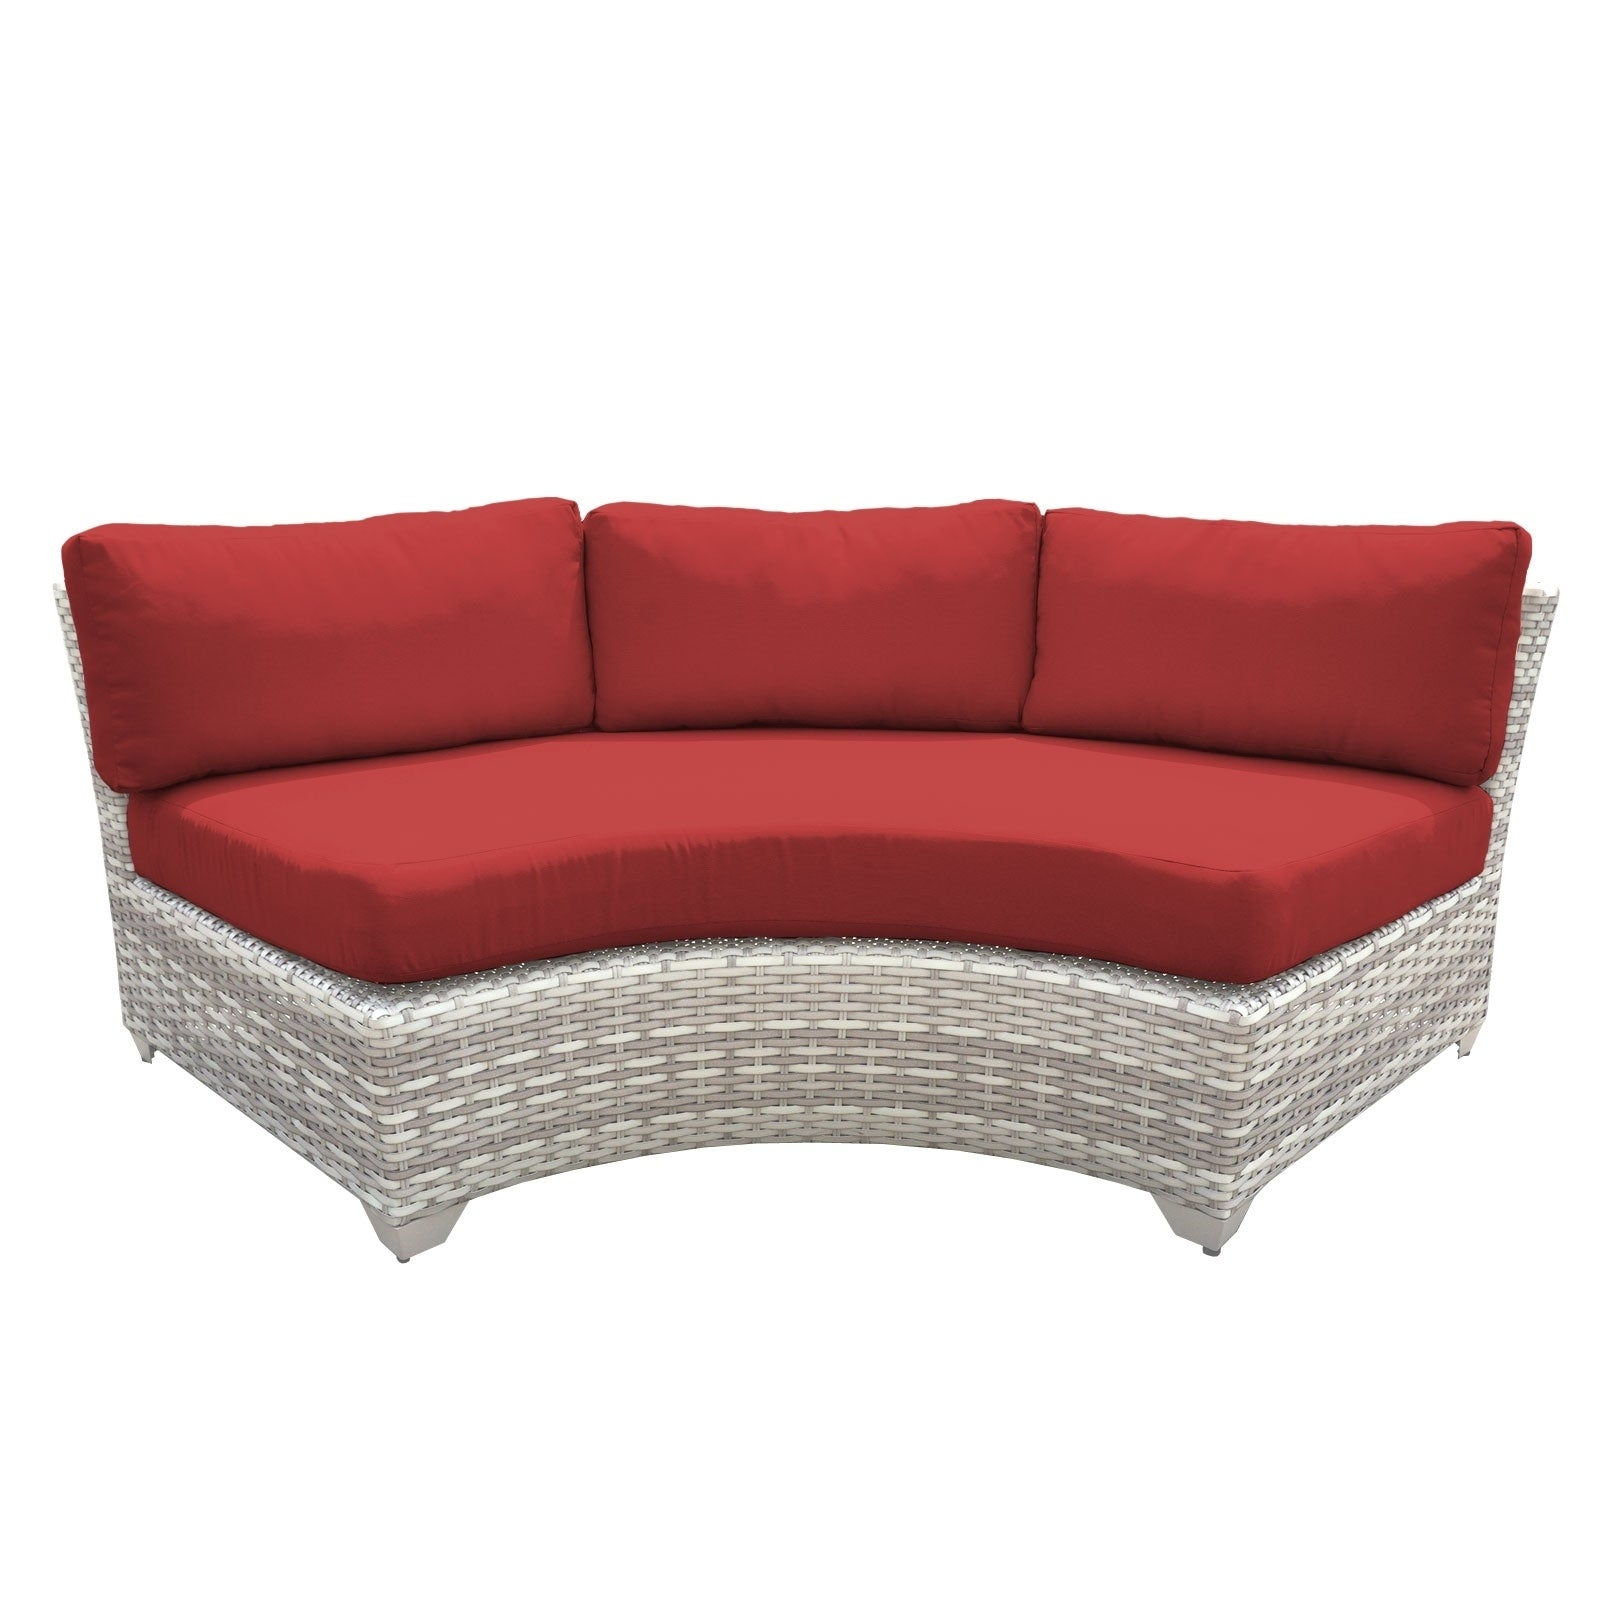 Catamaran Outdoor Patio Curved Wicker Sofa (Crimson), Gre...